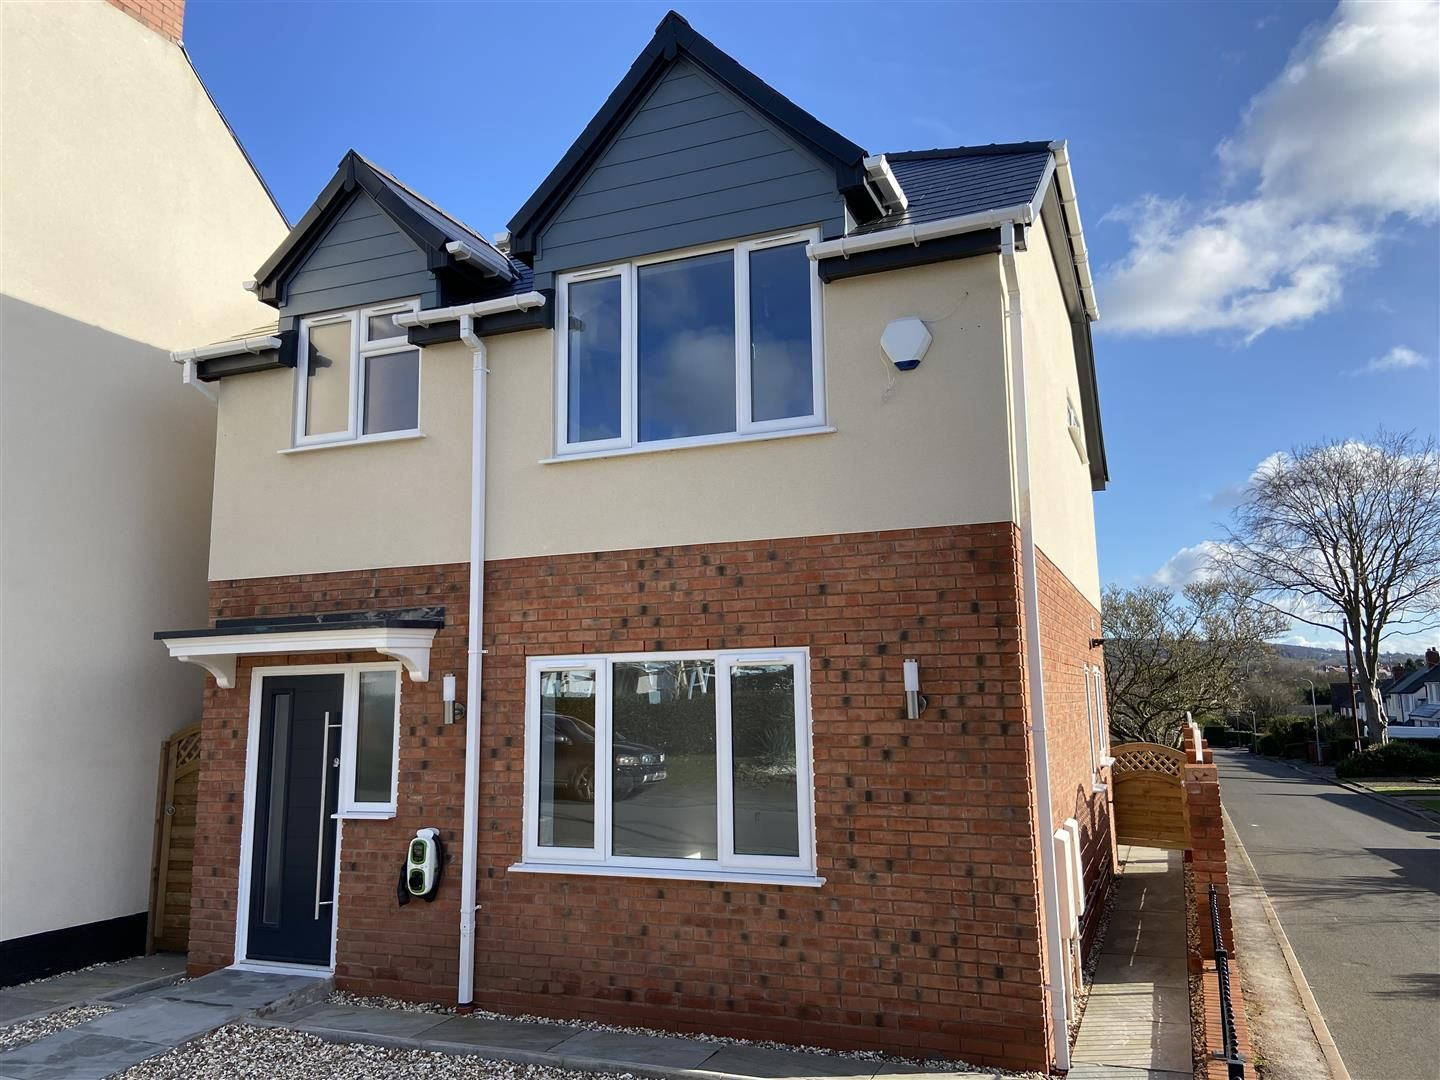 4 bed detached for sale, DY8